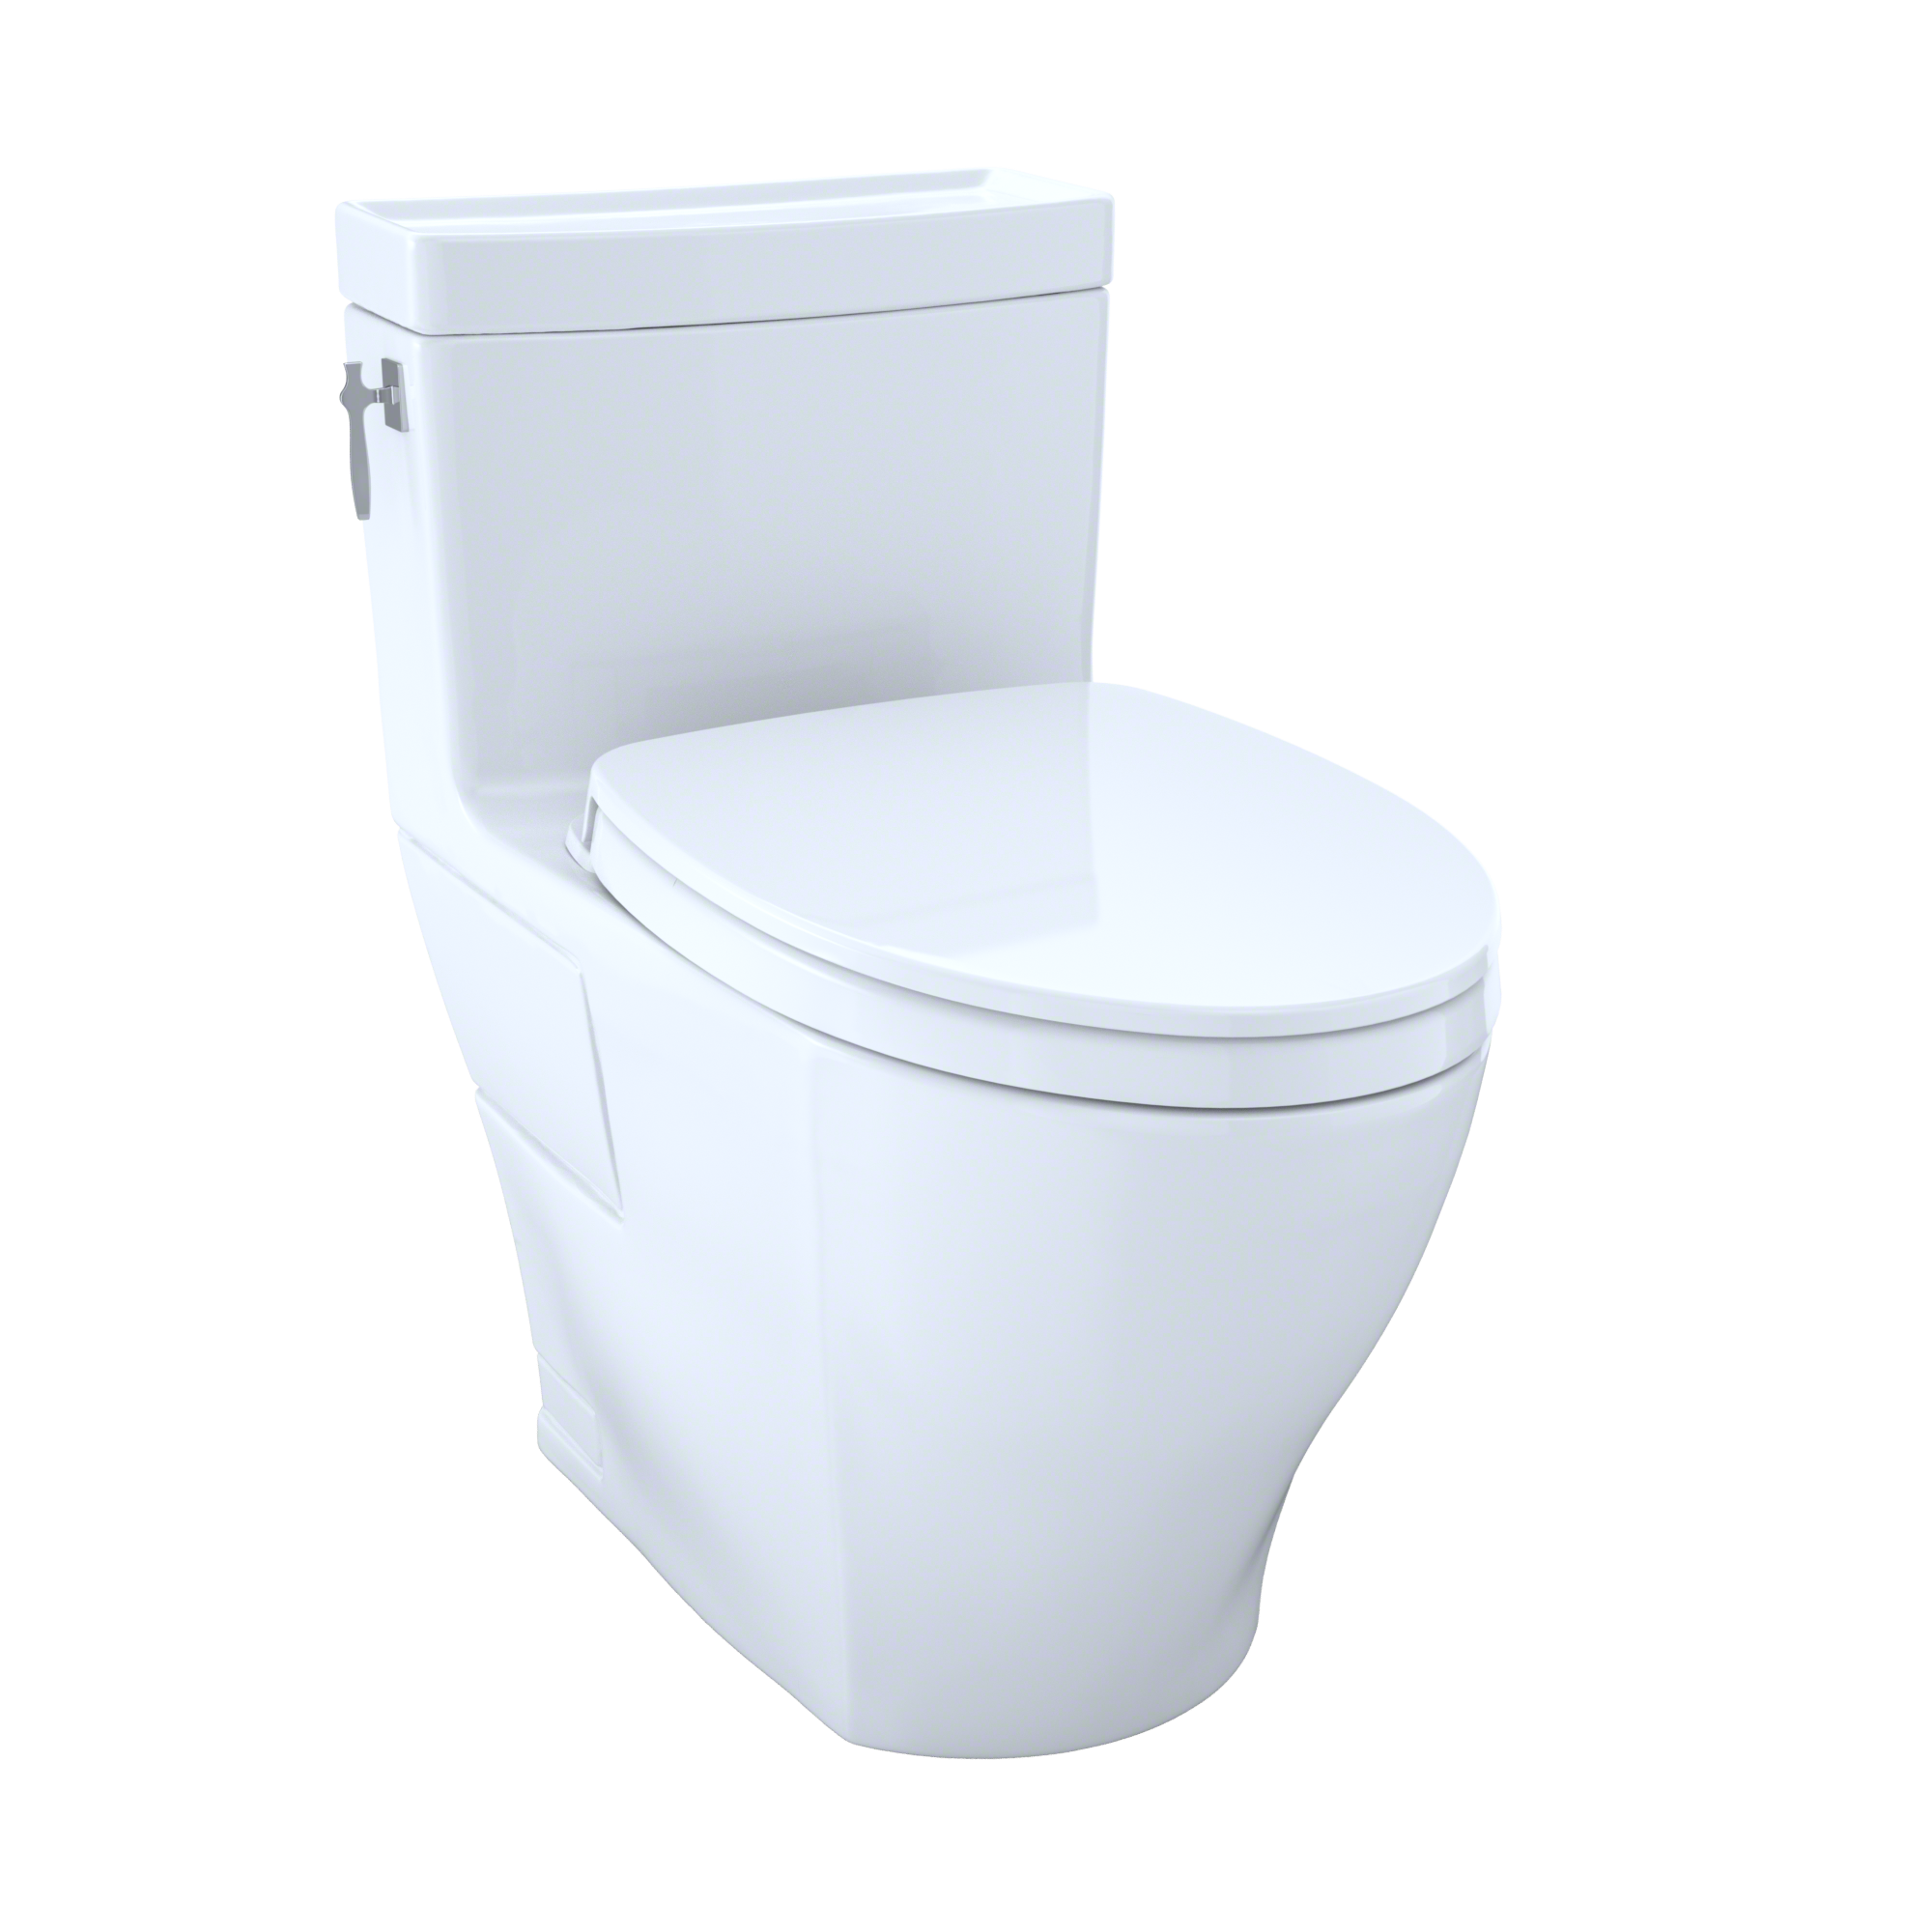 TOTO Aimes WASHLET+ One-Piece Elongated 1.28 GPF Universal Height Skirted Toilet with CeFiONtect, Cotton White - MS626124CEFG#01